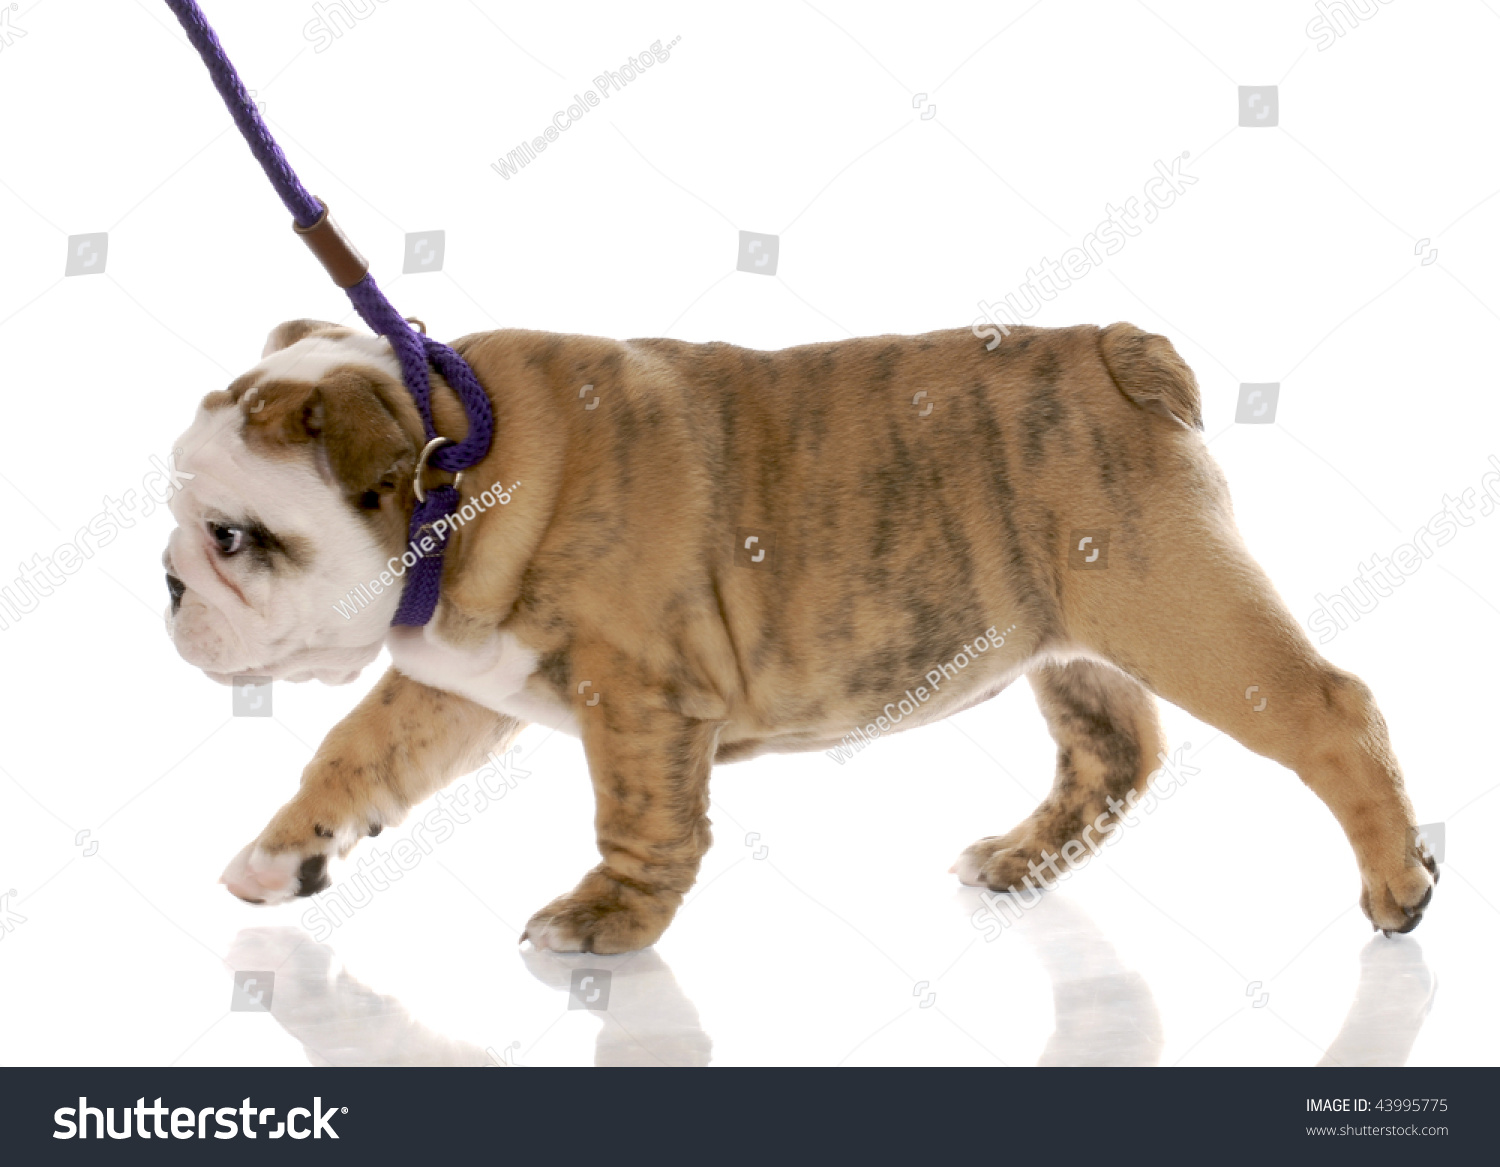 how to get a free bulldog puppy